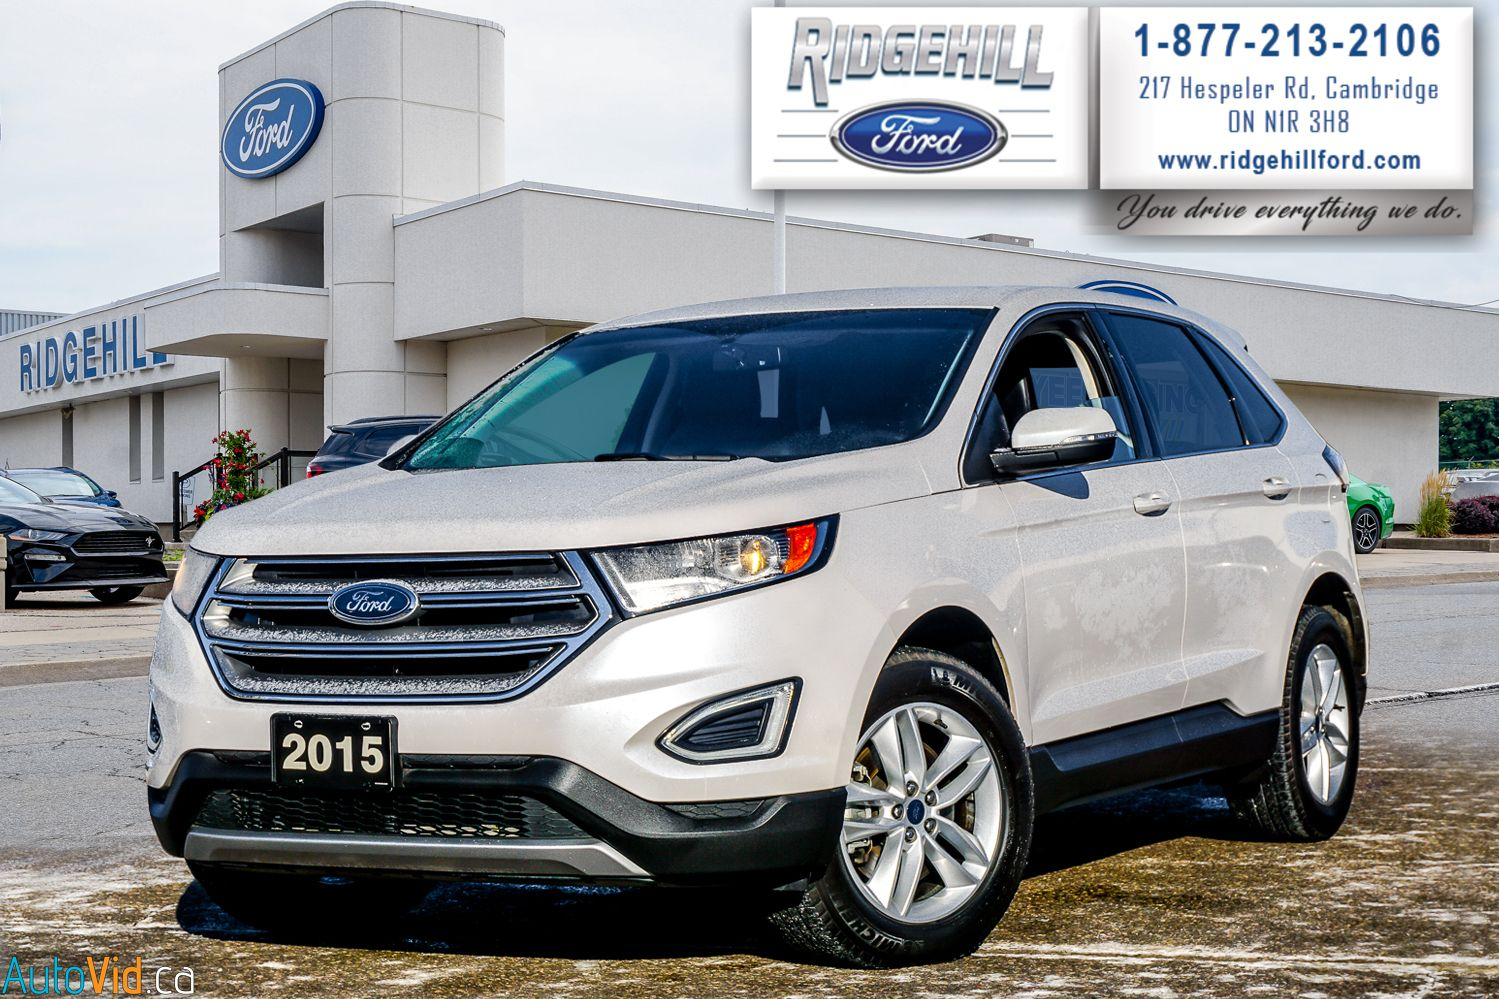 2015 Ford Edge Image